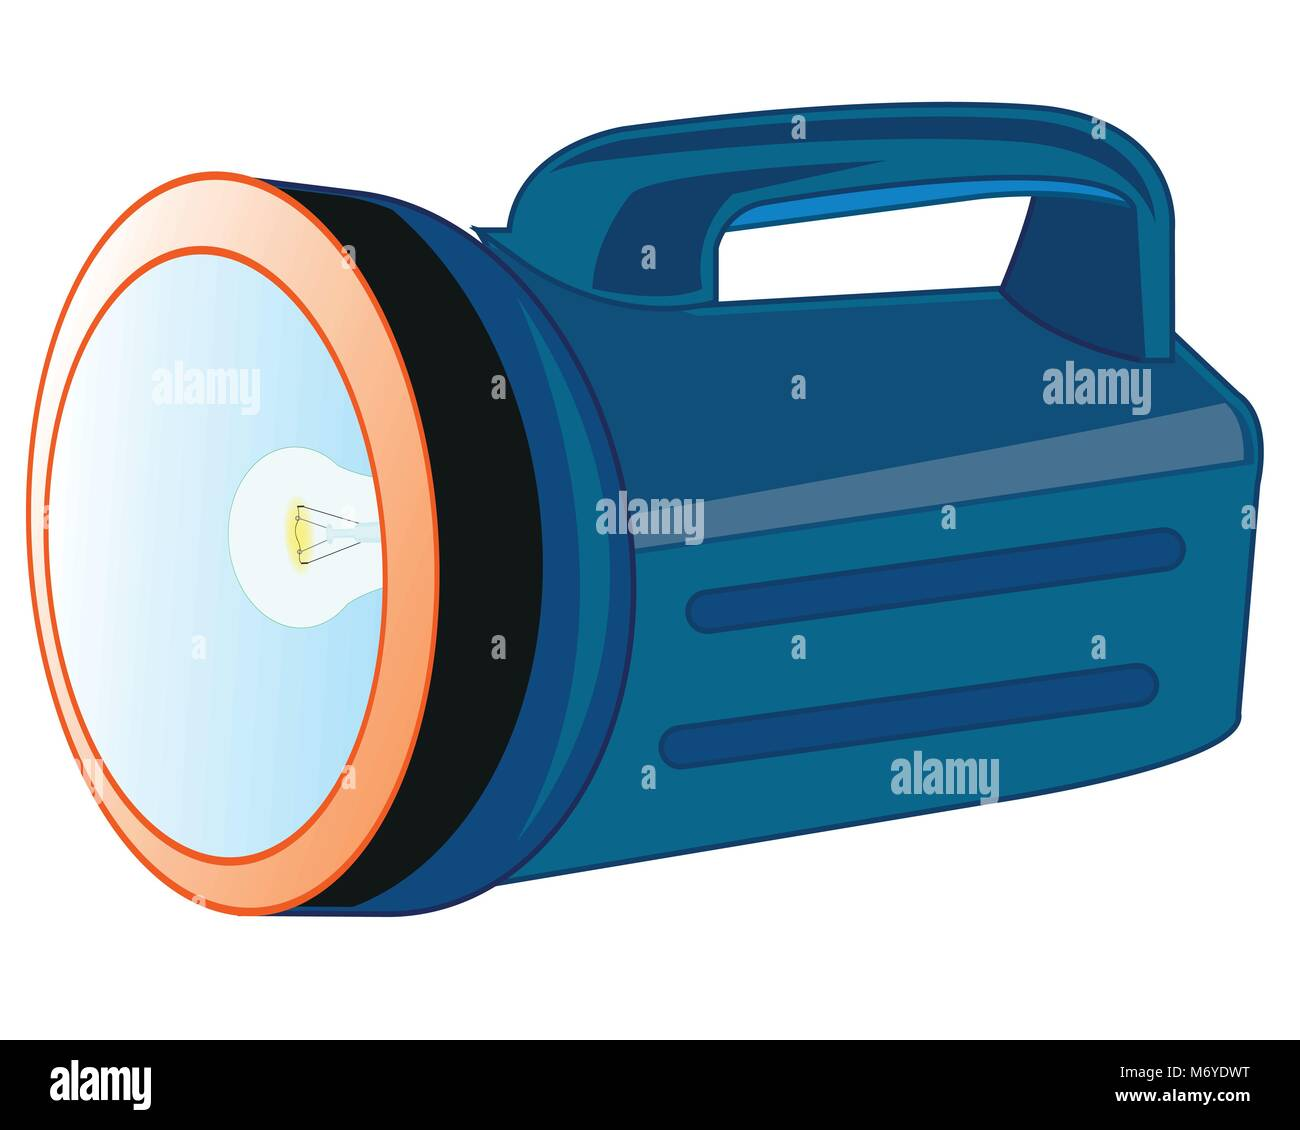 Flash-light with handle - Stock Vector